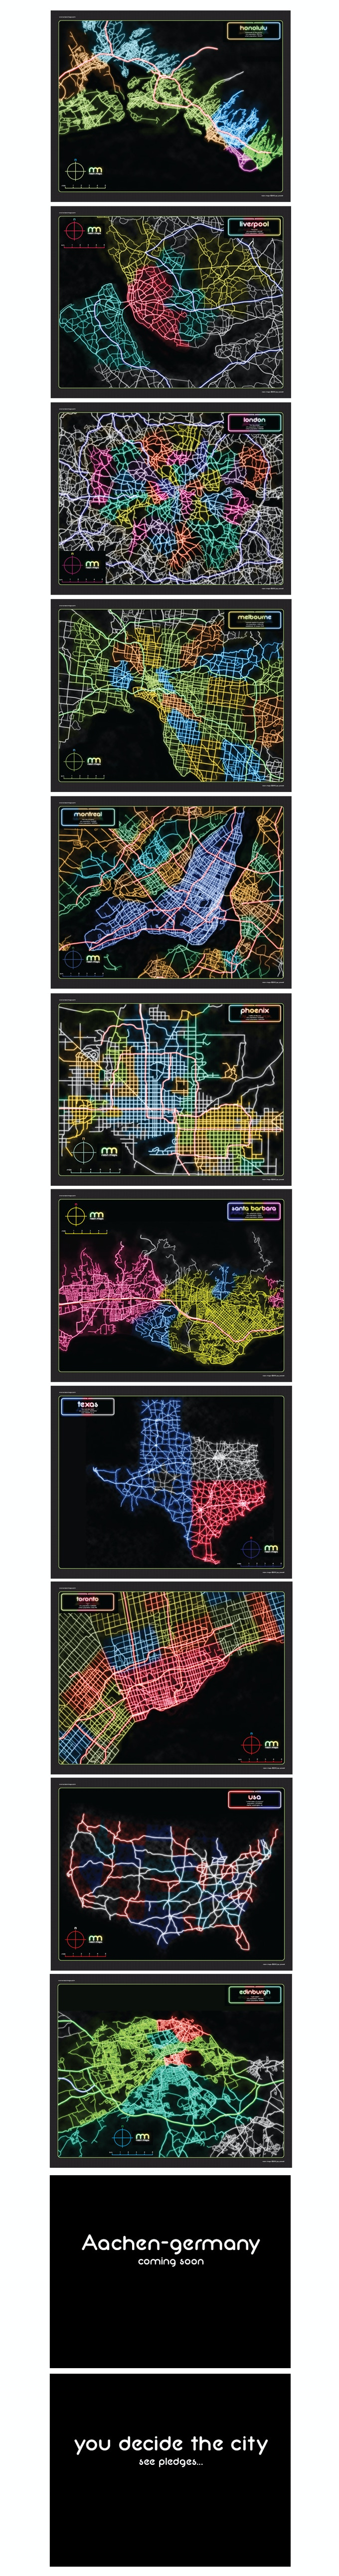 Neon maps colorful artistic poster prints by jay powell kickstarter special thanks to the following gumiabroncs Image collections